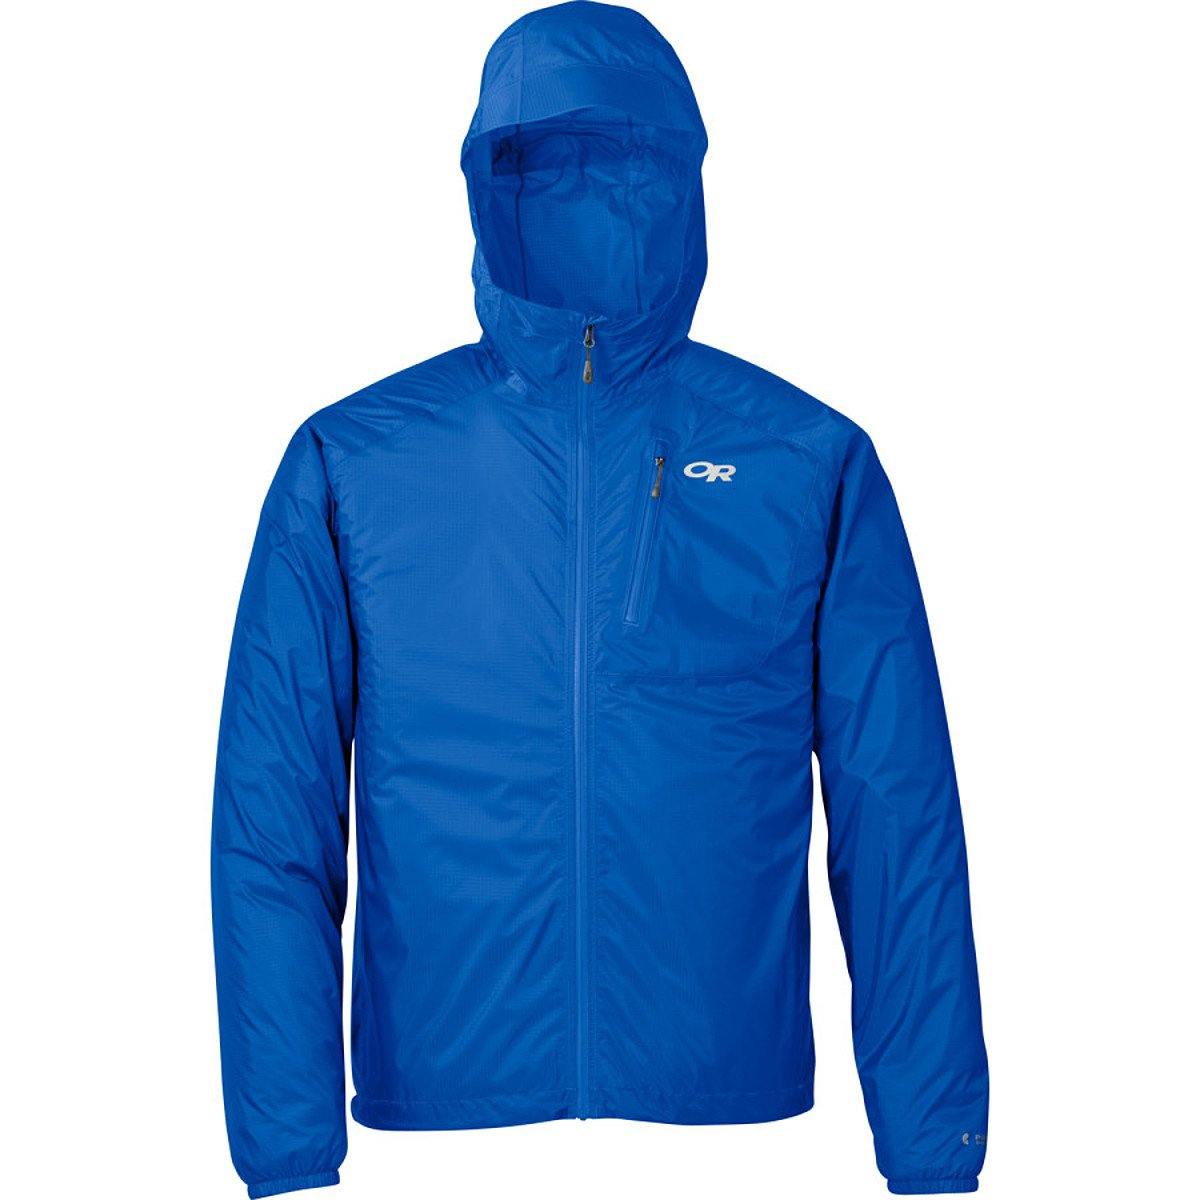 Outdoor Research Men's Helium II Jacket, Glacier, Small by Outdoor Research